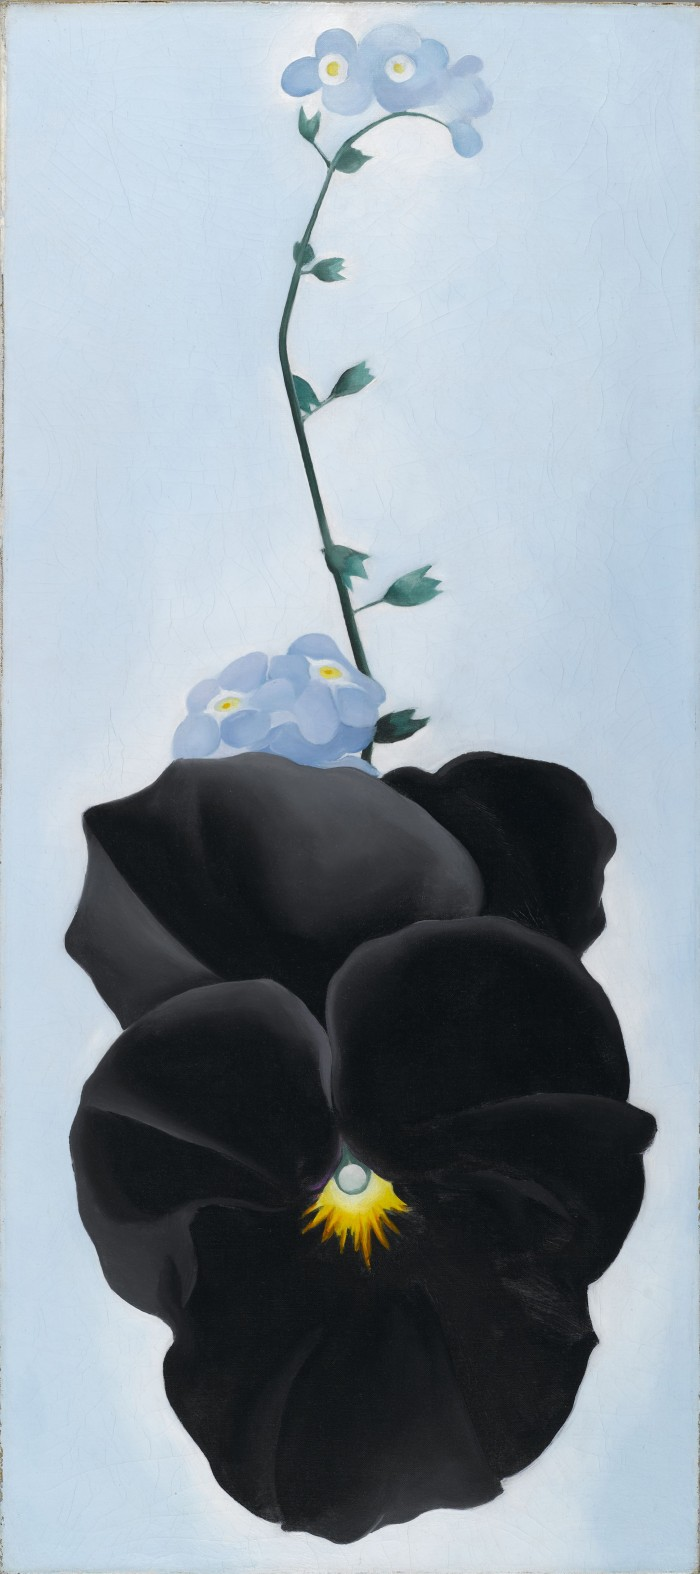 Georgia O'Keeffe. Black Pansy & Forget-Me-Nots (Pansy), 1926.